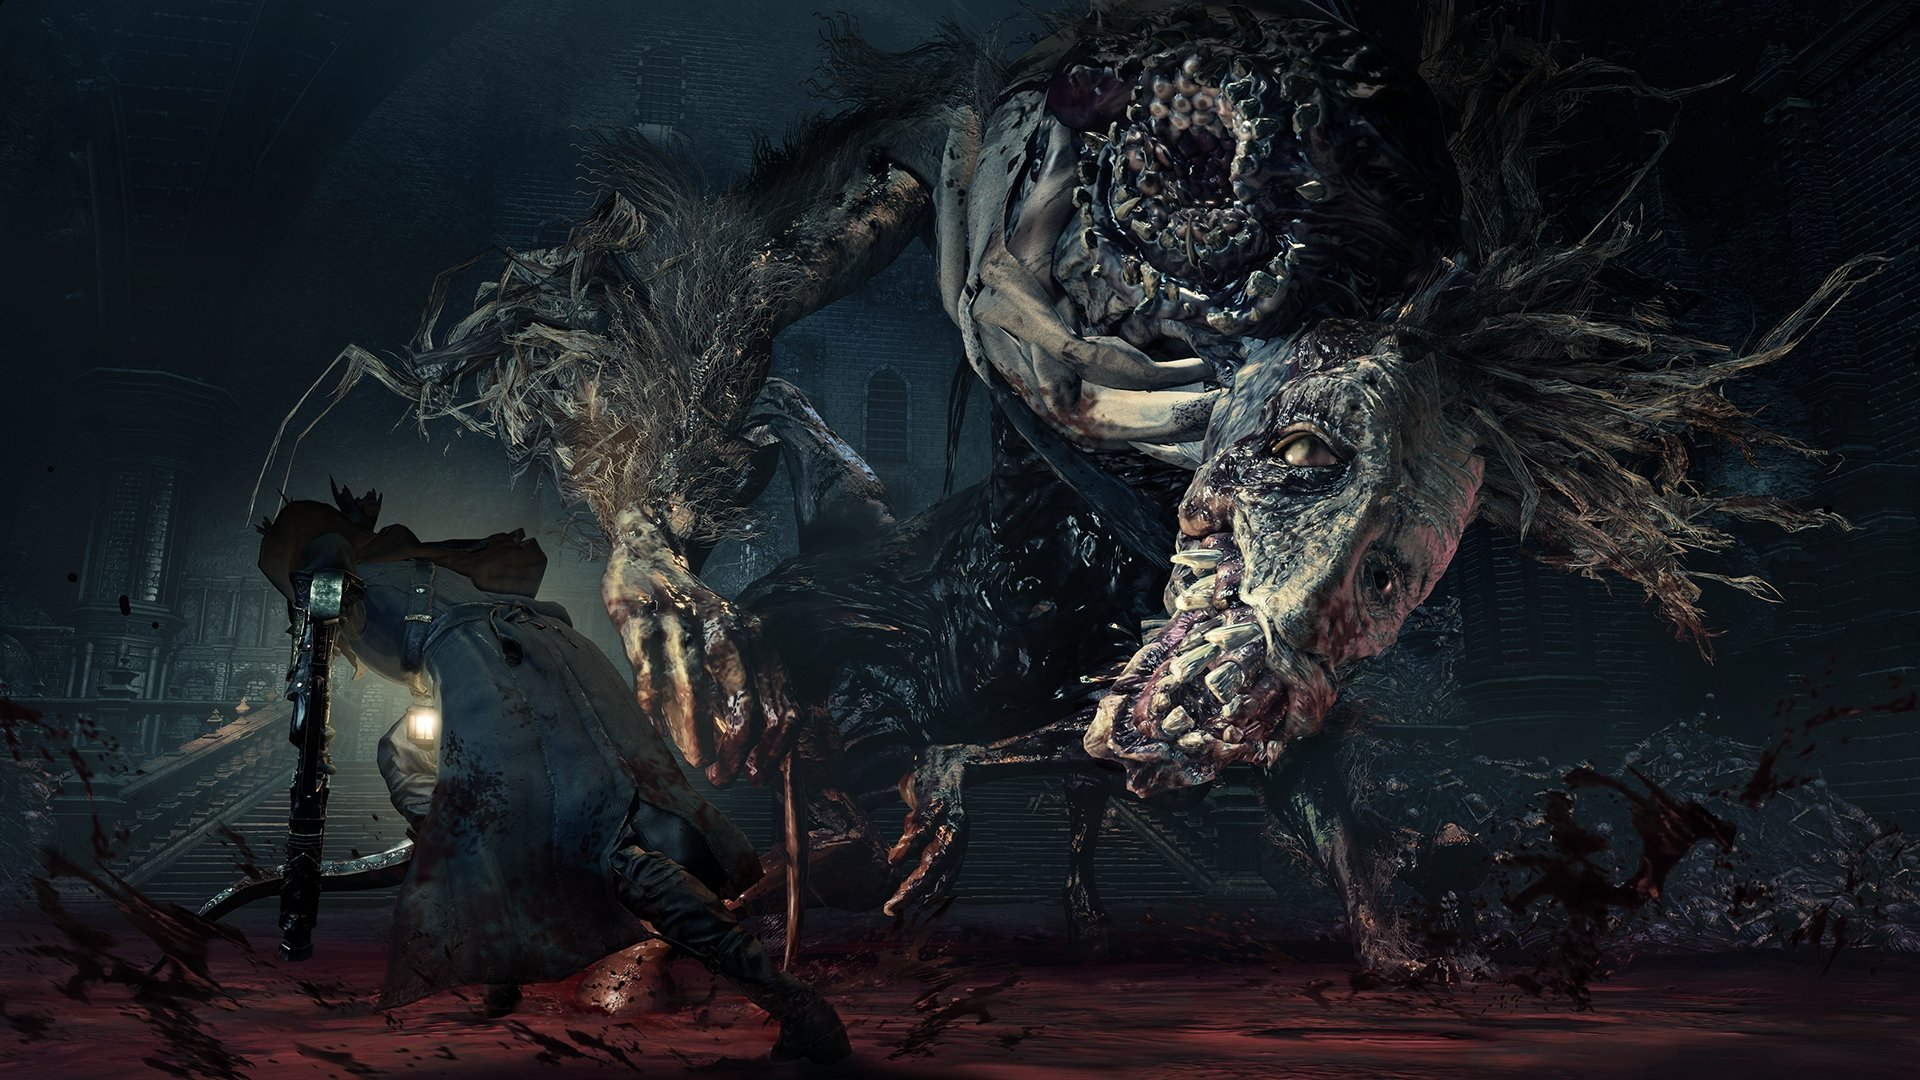 Ludwig is a boss in bloodborne 39 s the old hunters dlc full hd wallpaper and background image - Bloodborne download ...